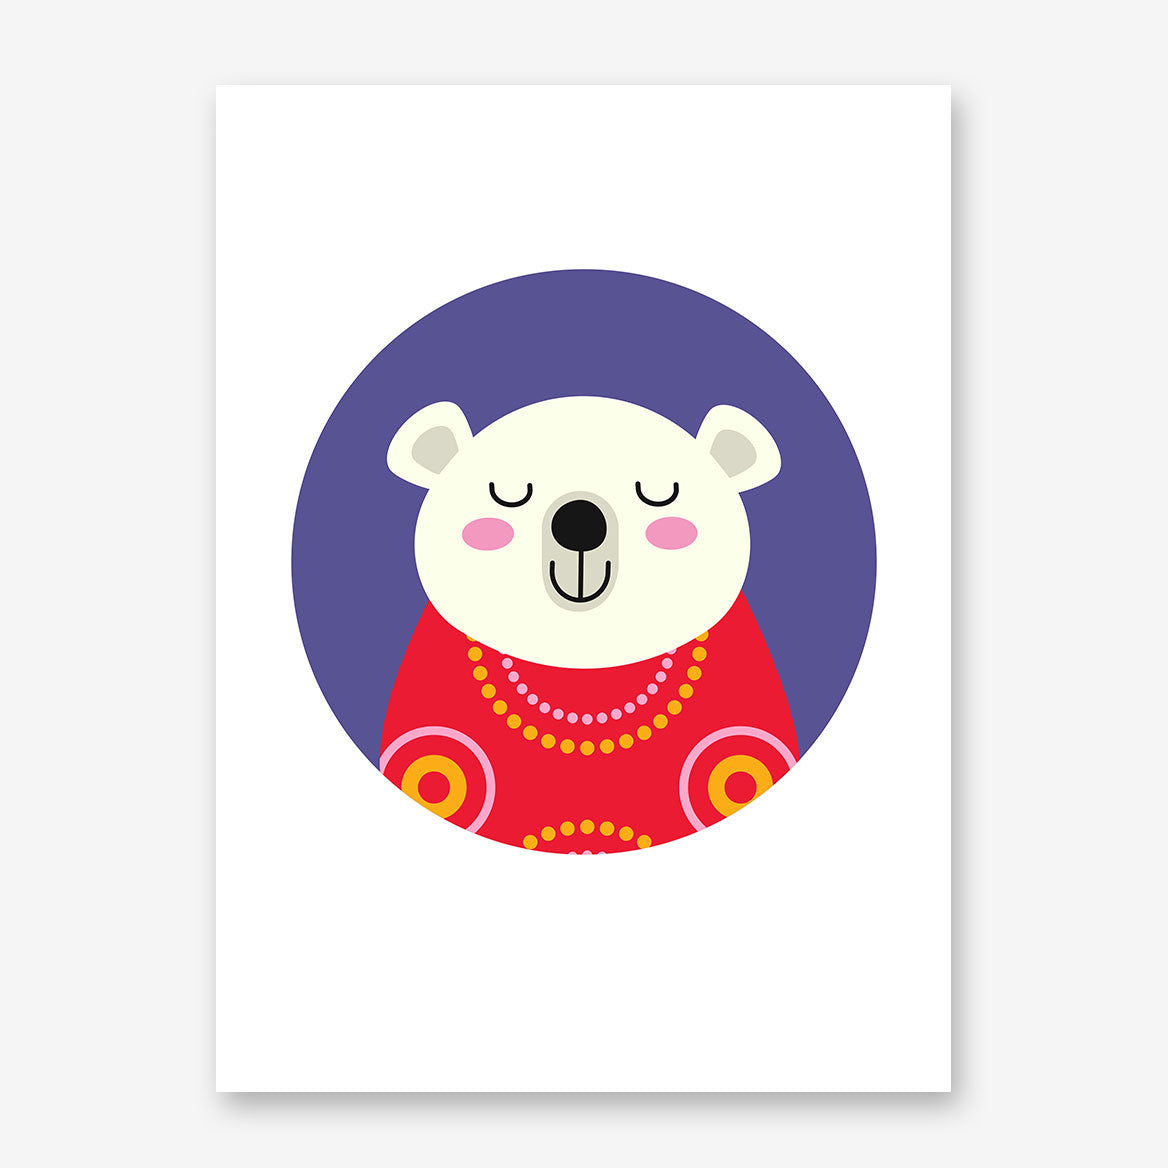 Nursery poster print with a smiley polar bear in a purple circle.